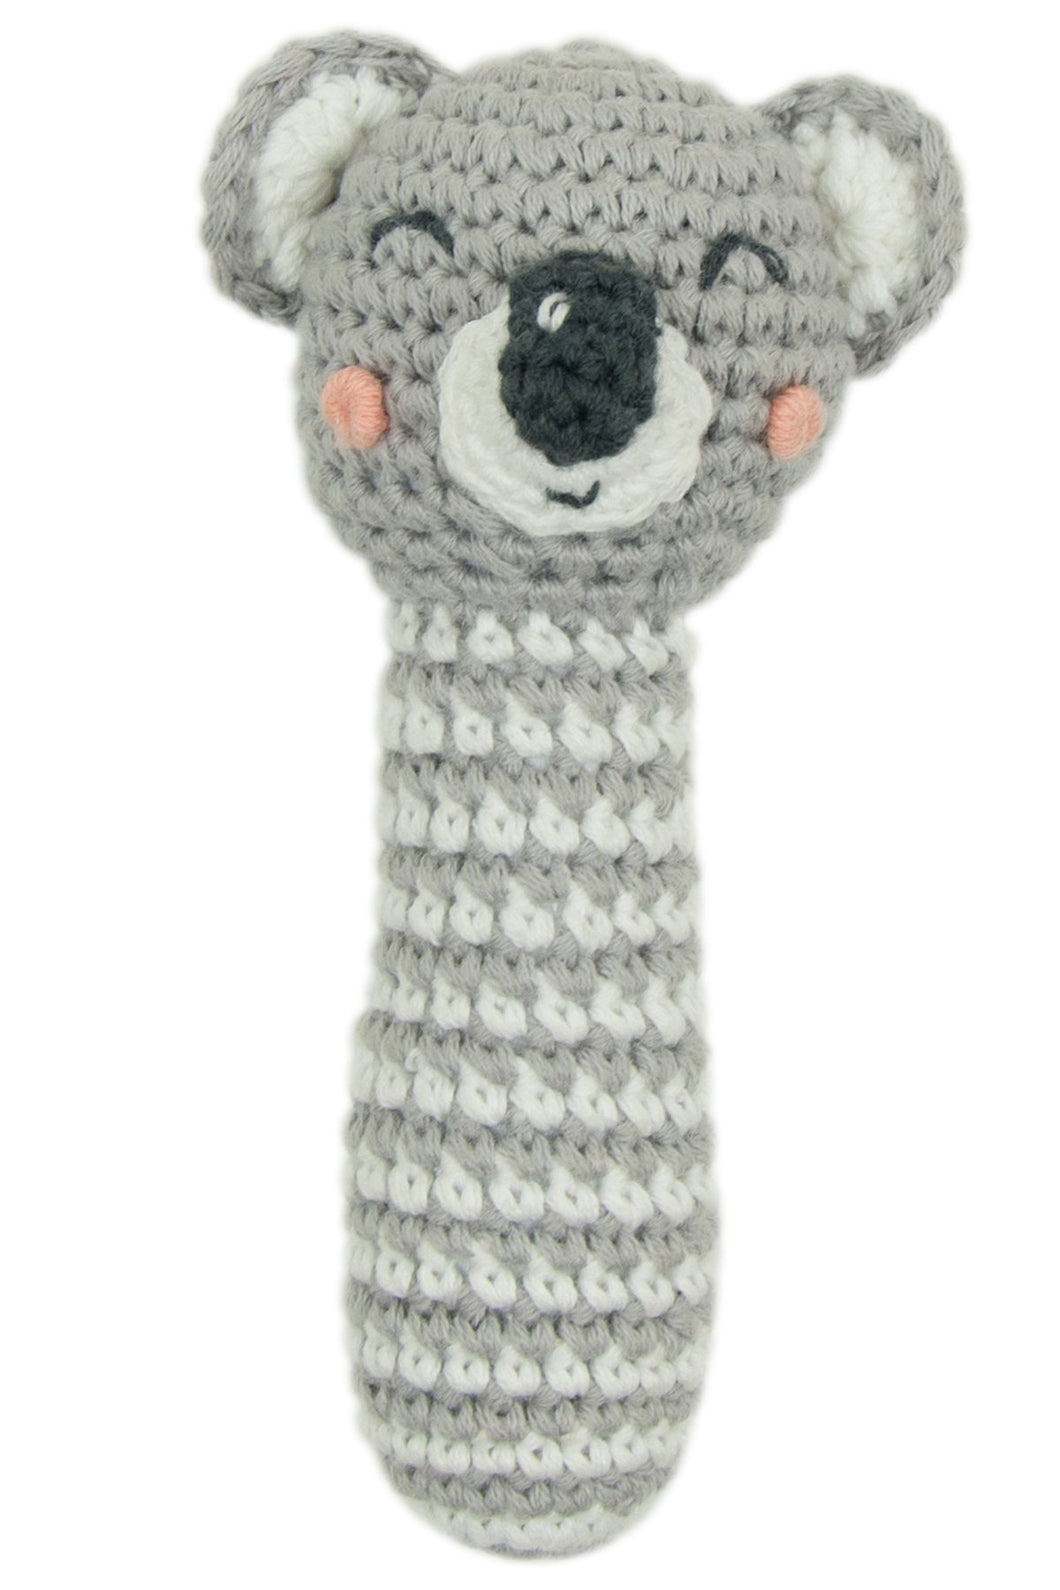 Koala Crochet Rattle by Weegoamigo